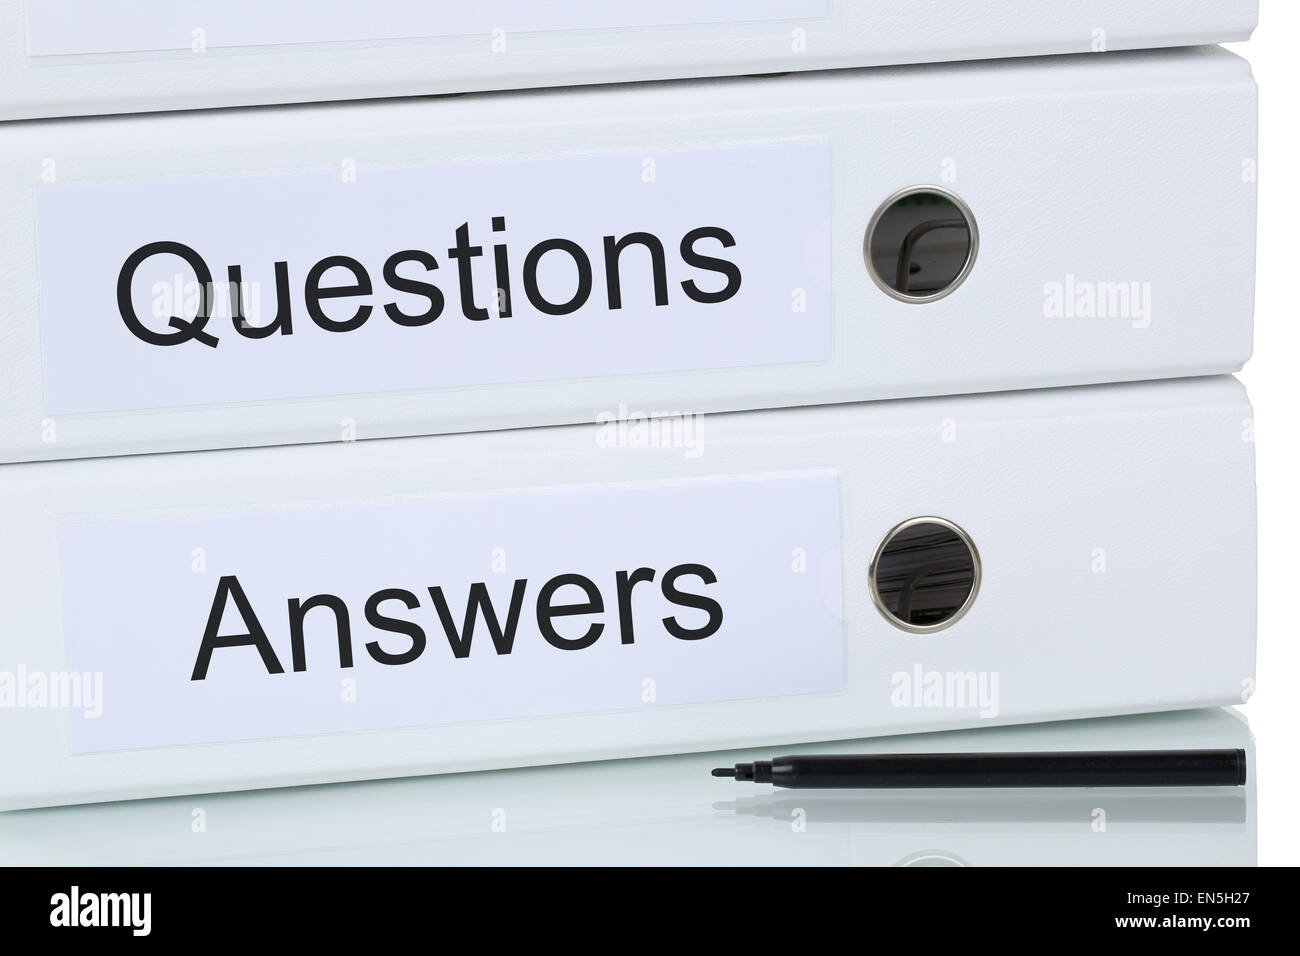 Question and answer problem solution business concept - Stock Image